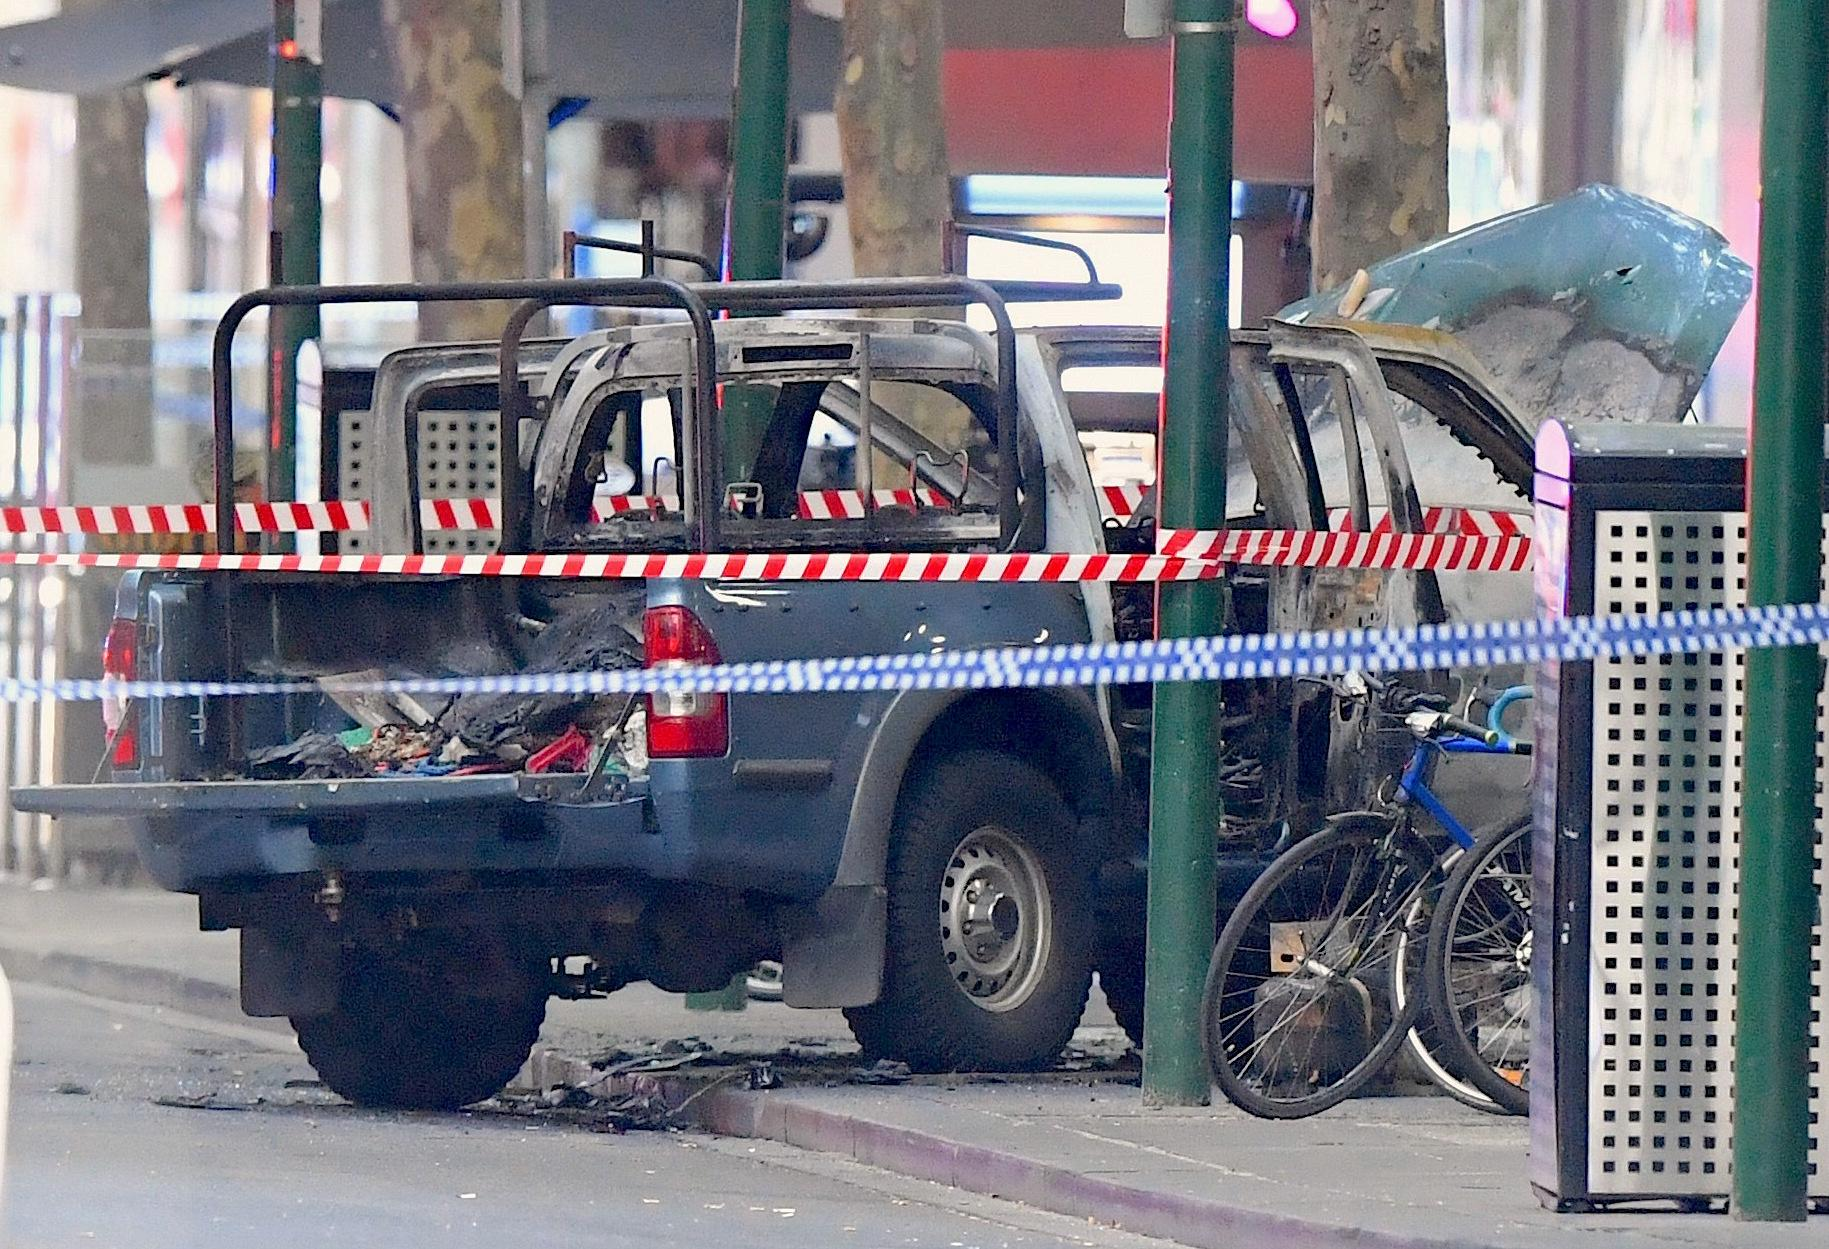 Melbourne stabber drove car loaded with gas cylinders: police